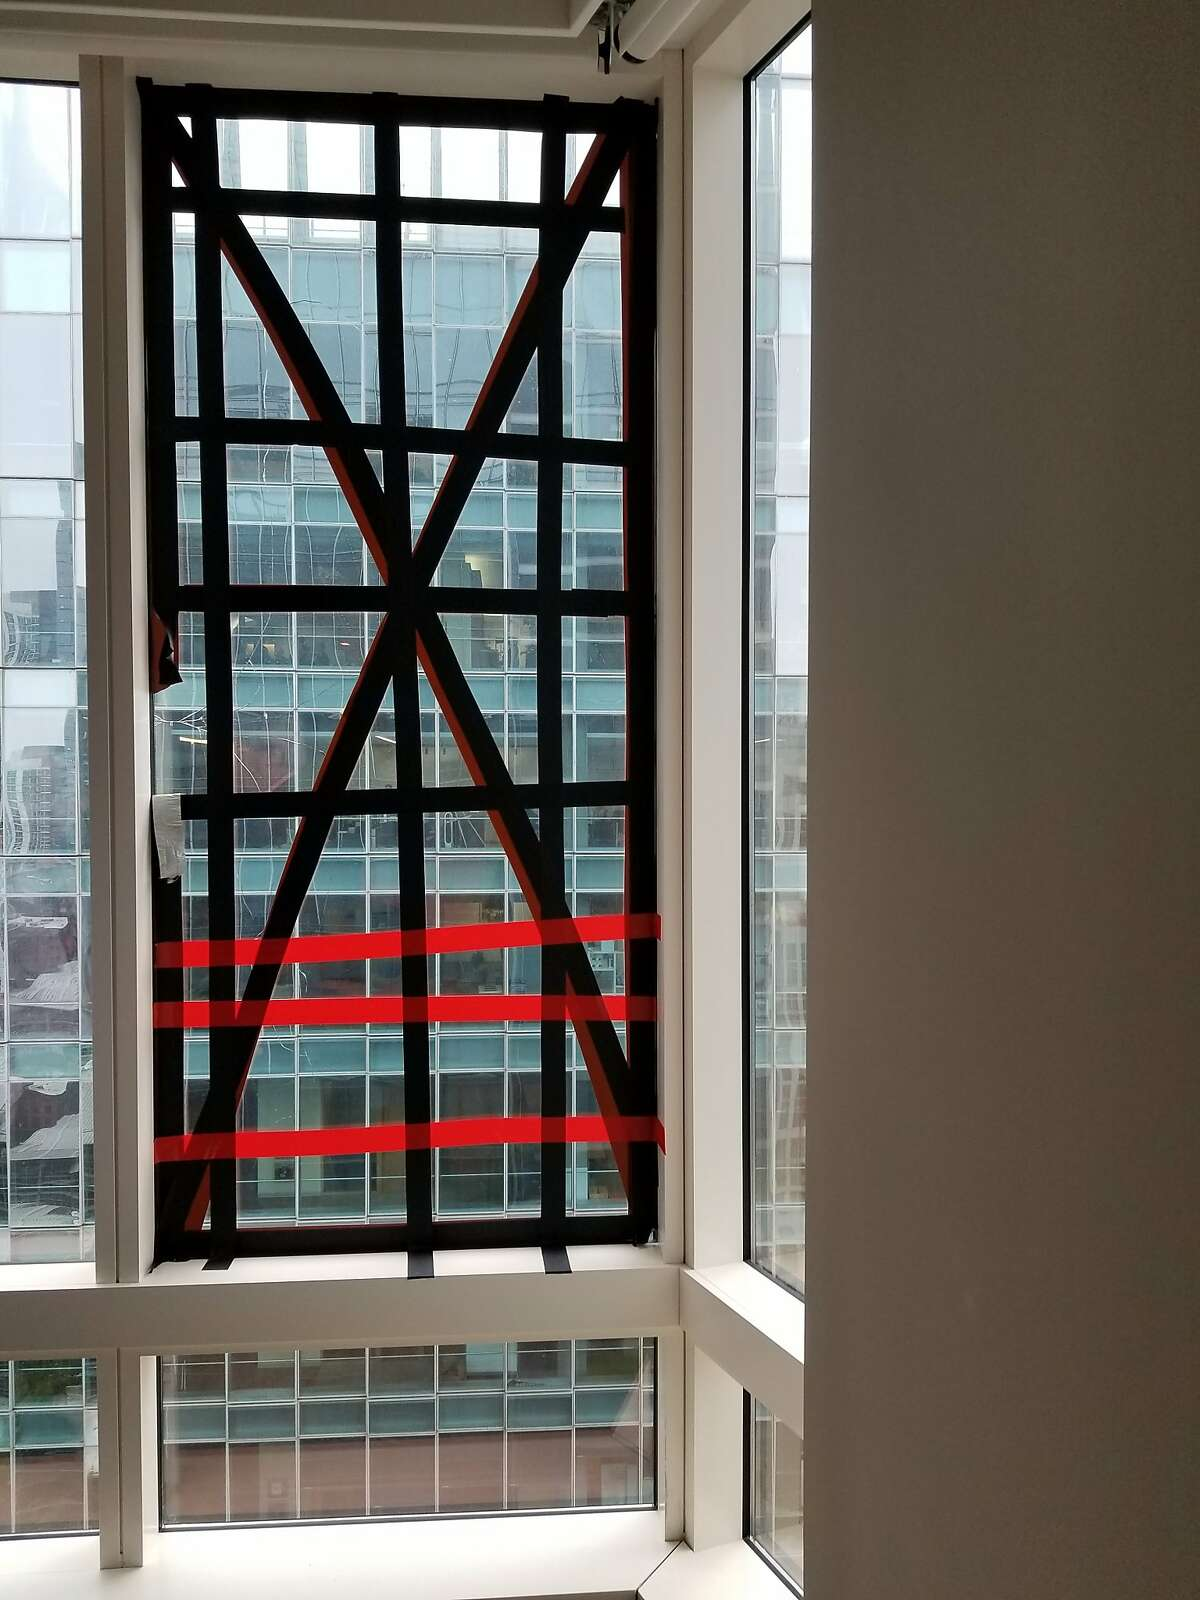 Cracked glass in the Millennium Tower.